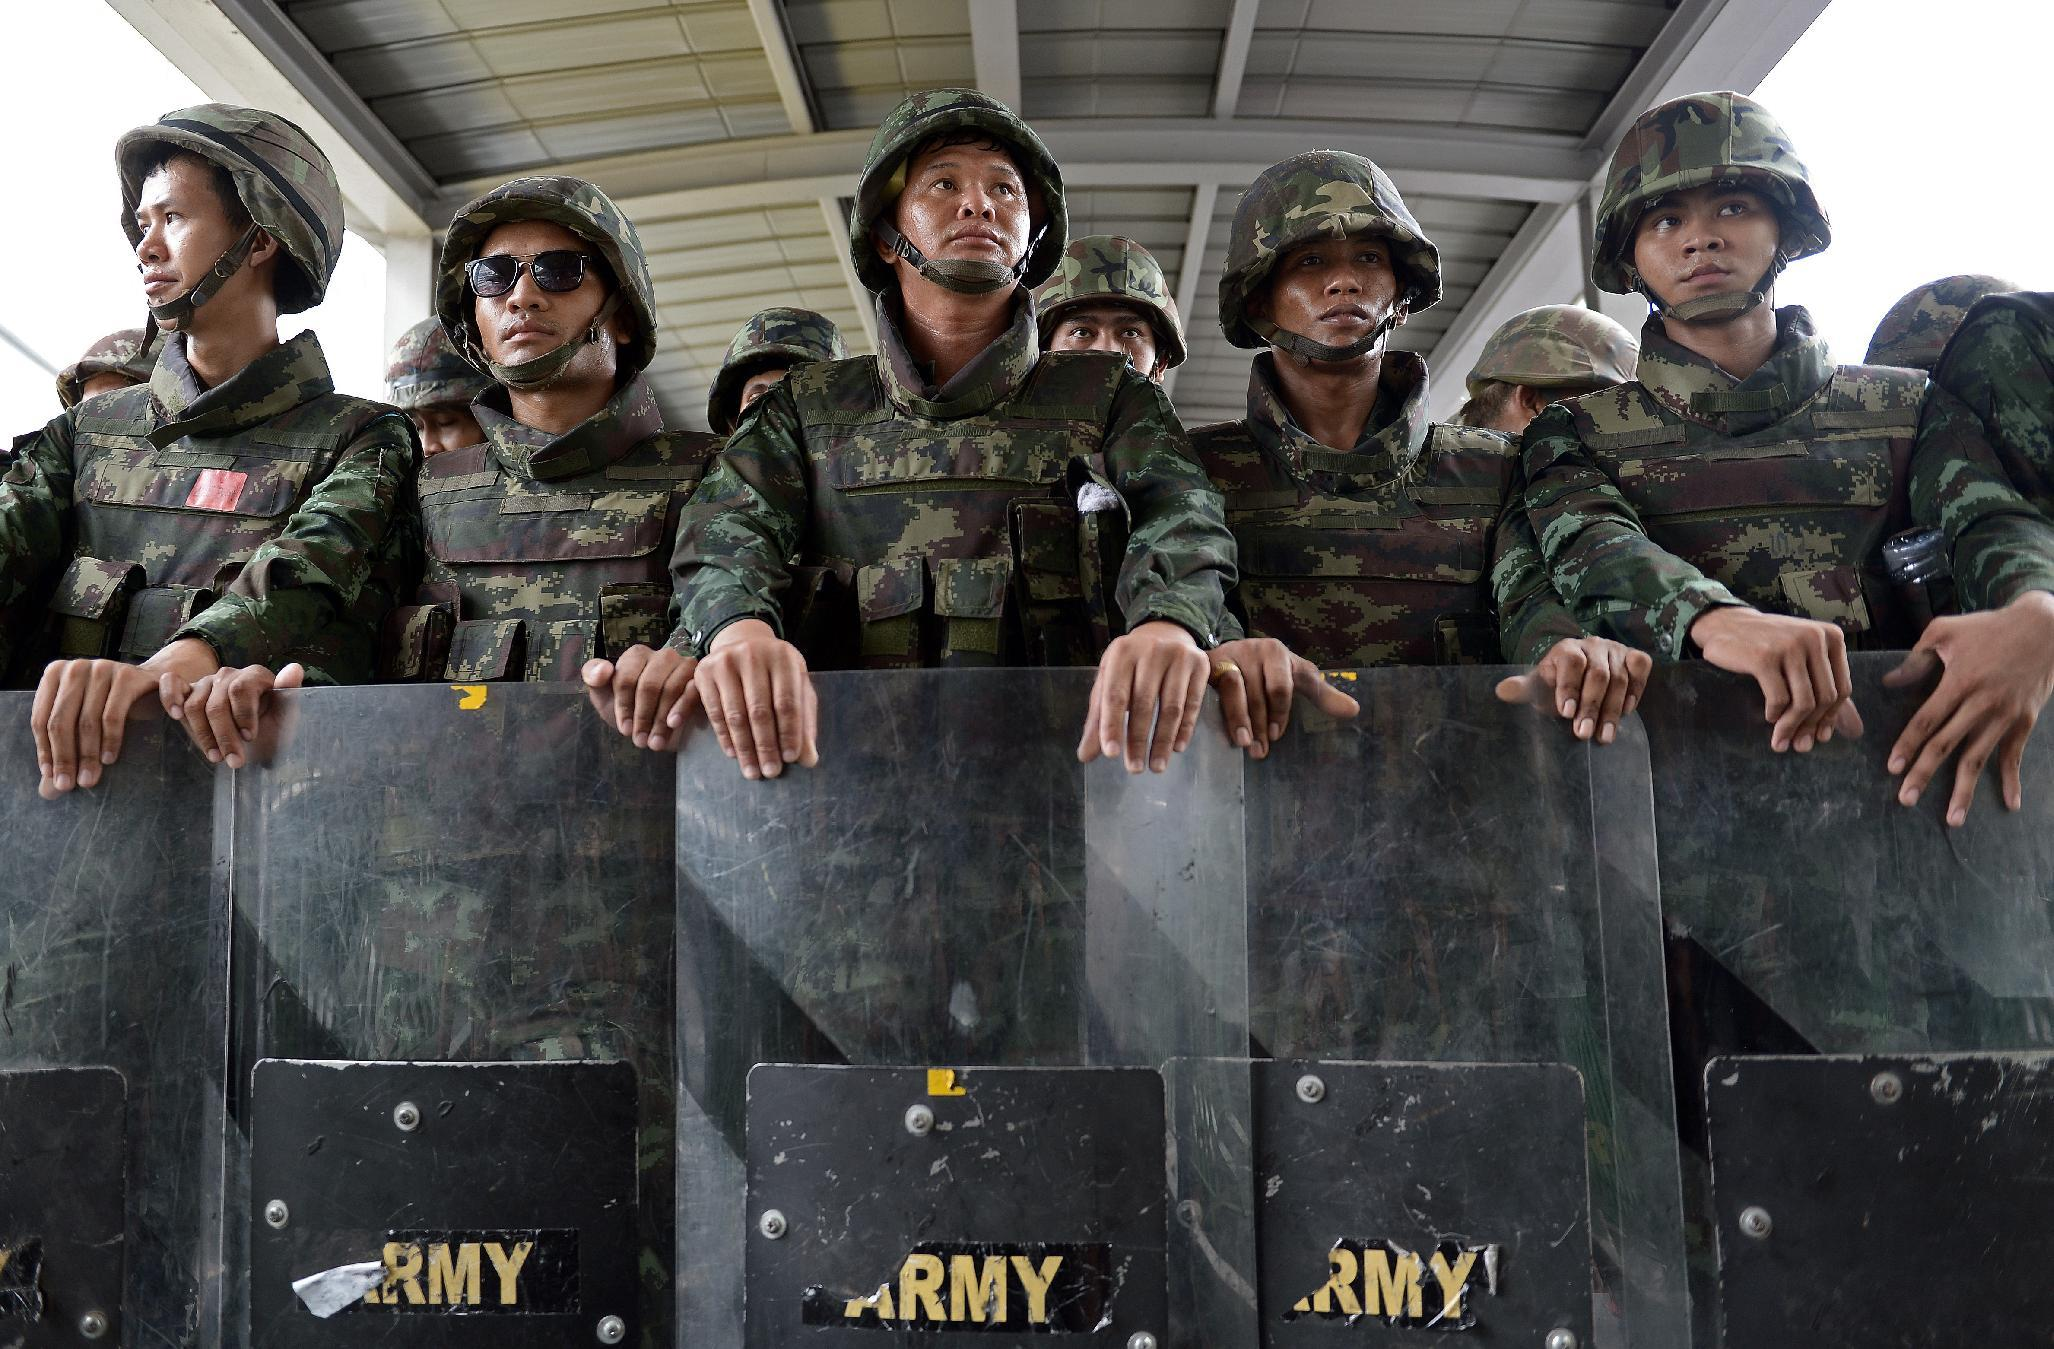 File photo shows Thai soldiers standing behind their shields after they sealed off an elevated train station leading to a shopping mall and broke up an anti-coup protest in downtown Bangkok on June 1, 2014